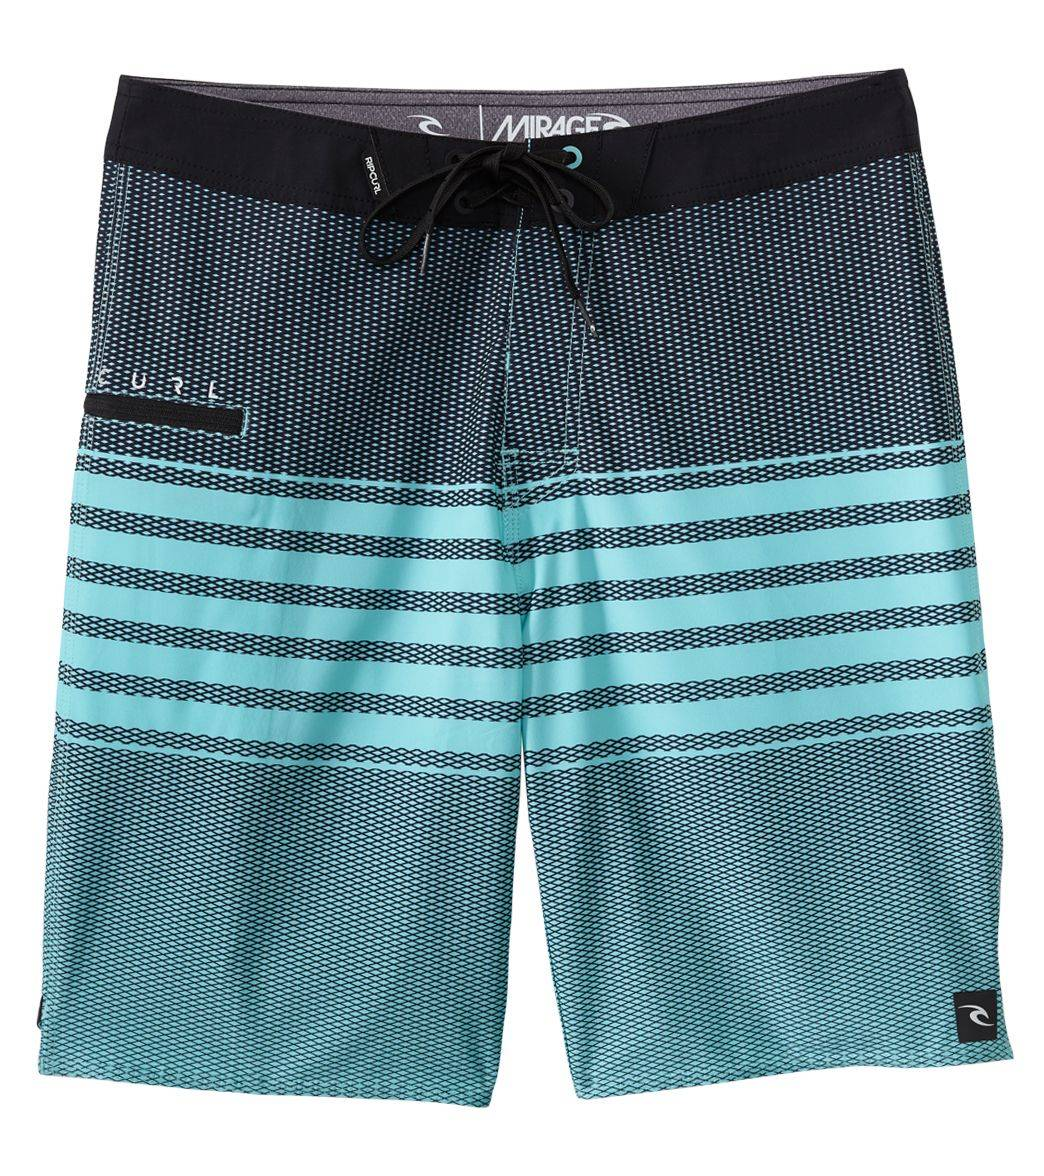 0ddabfd180 Rip Curl Men's Mirage Game Boardshort at SwimOutlet.com - Free ...